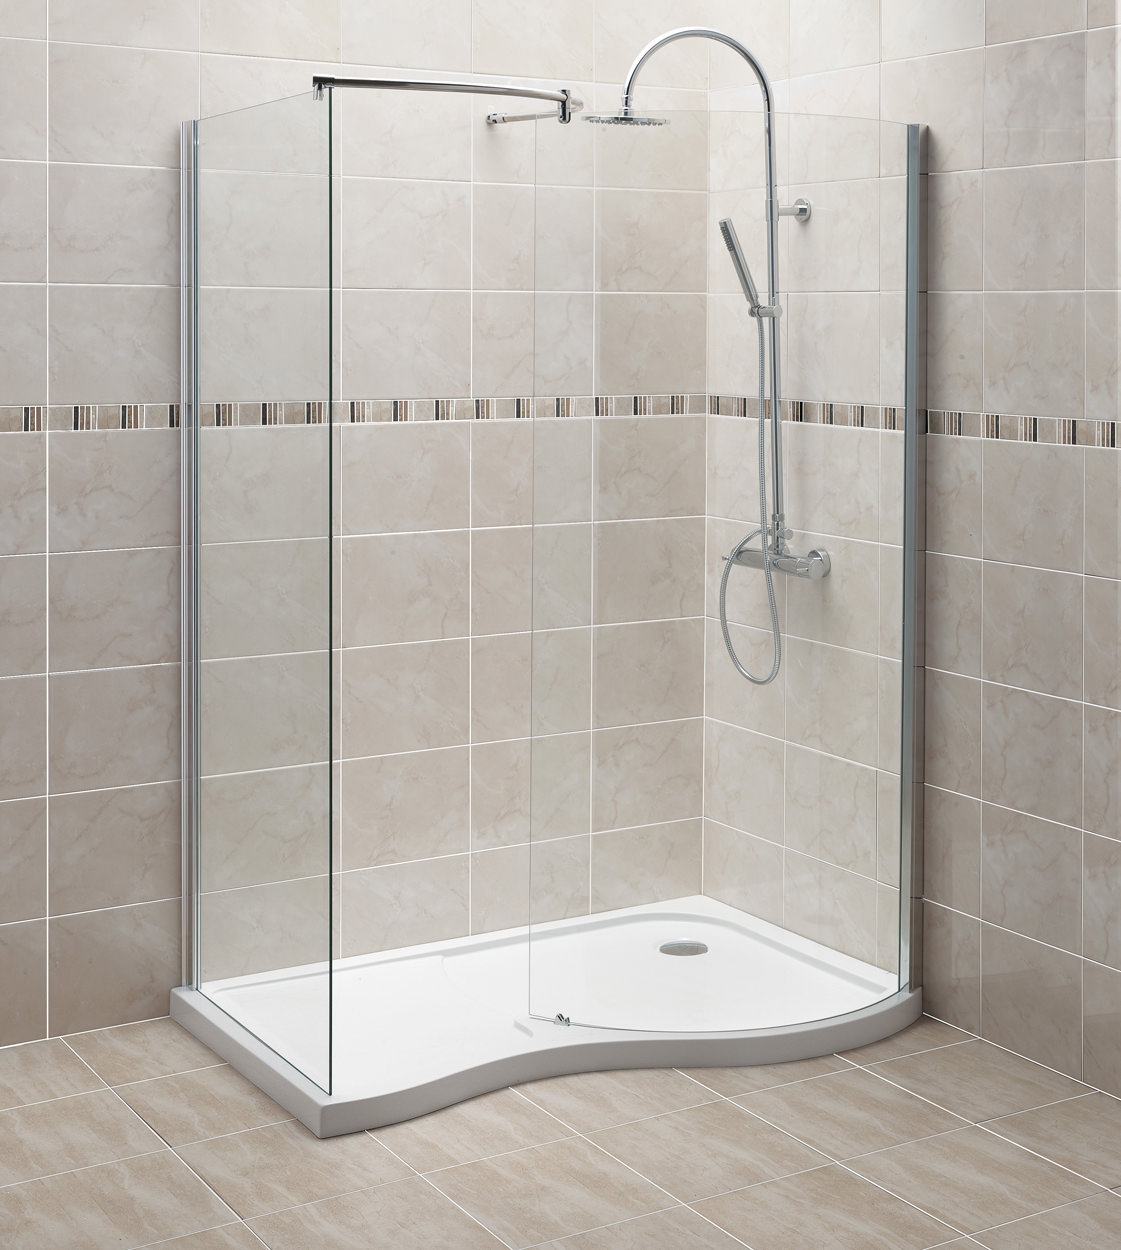 Balterley 1400 X 906mm Curved Walk In Shower Enclosure